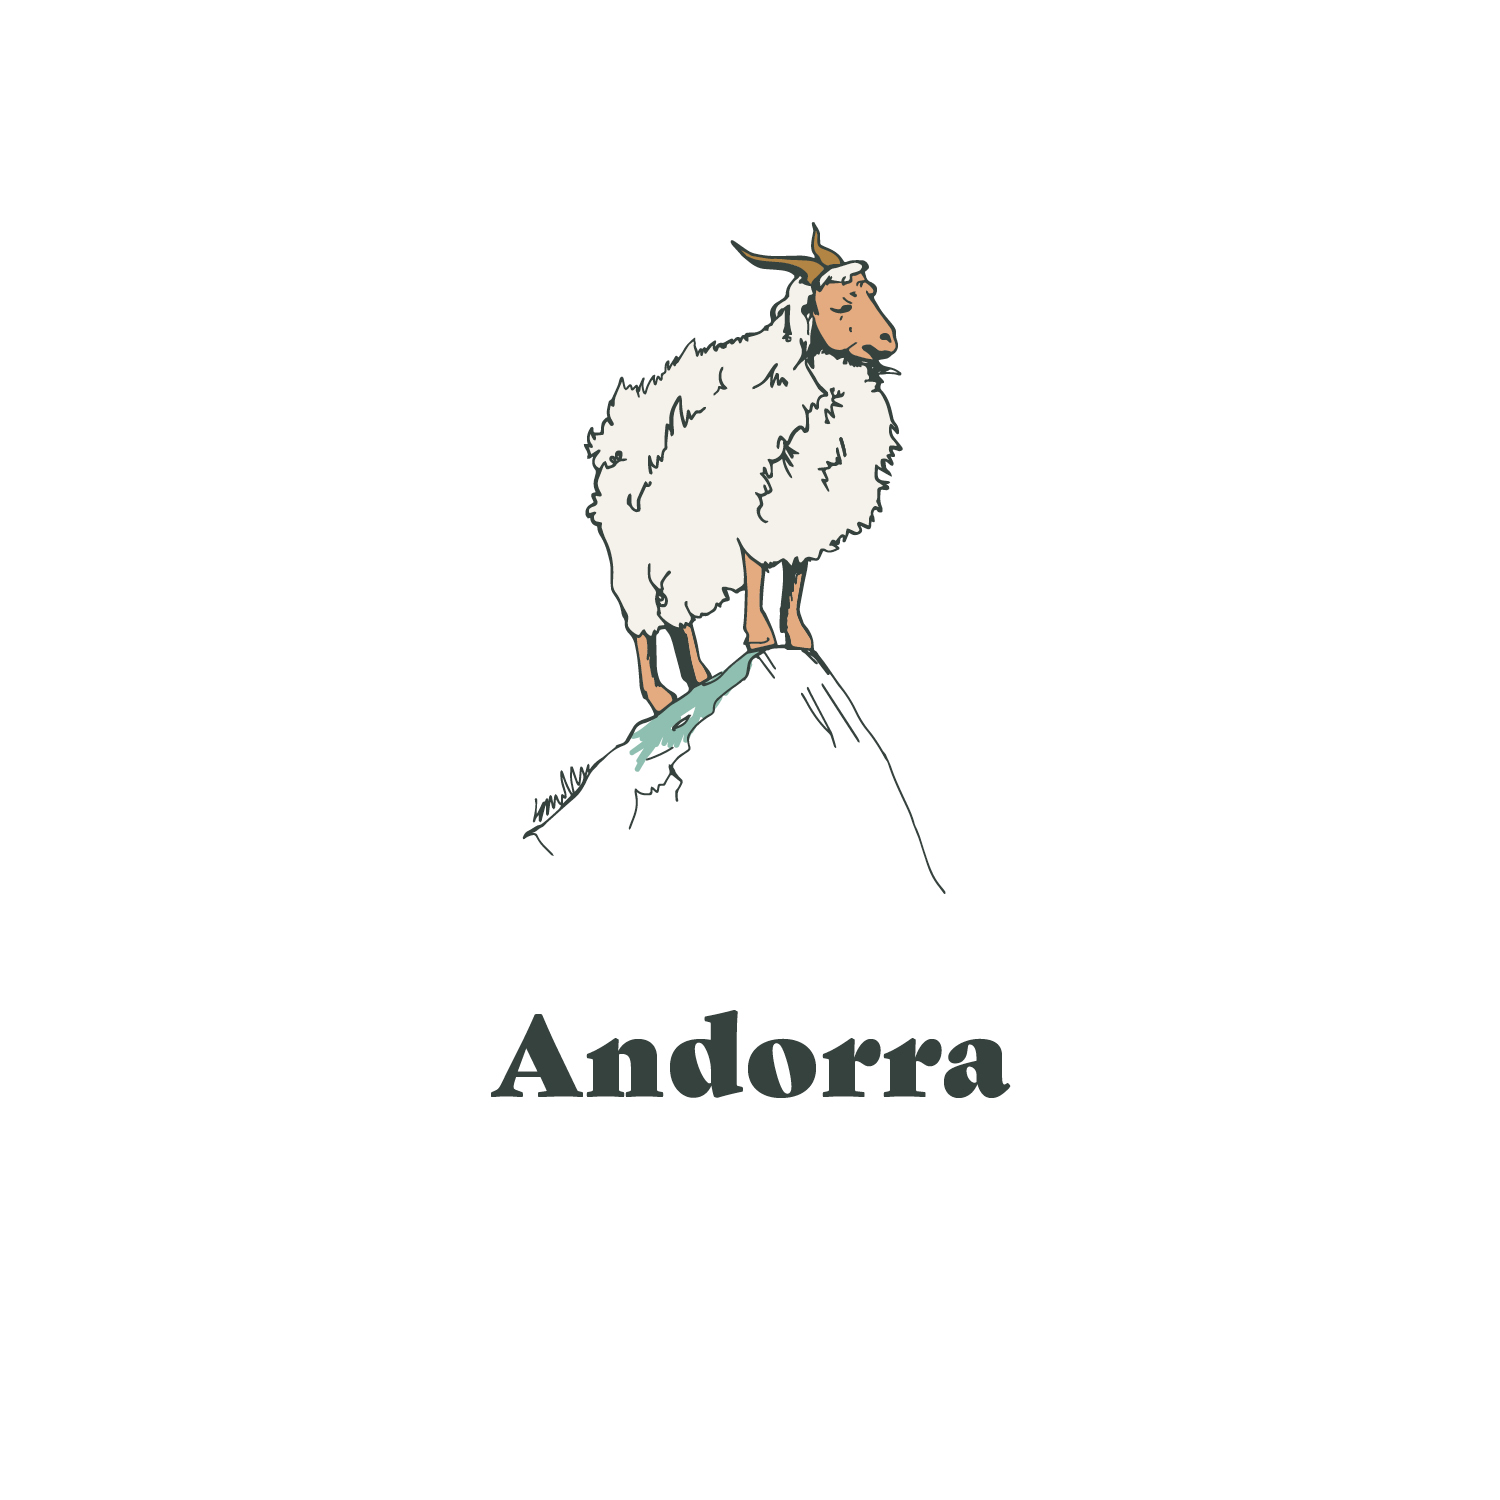 Andorra Yarn Graphic.jpg